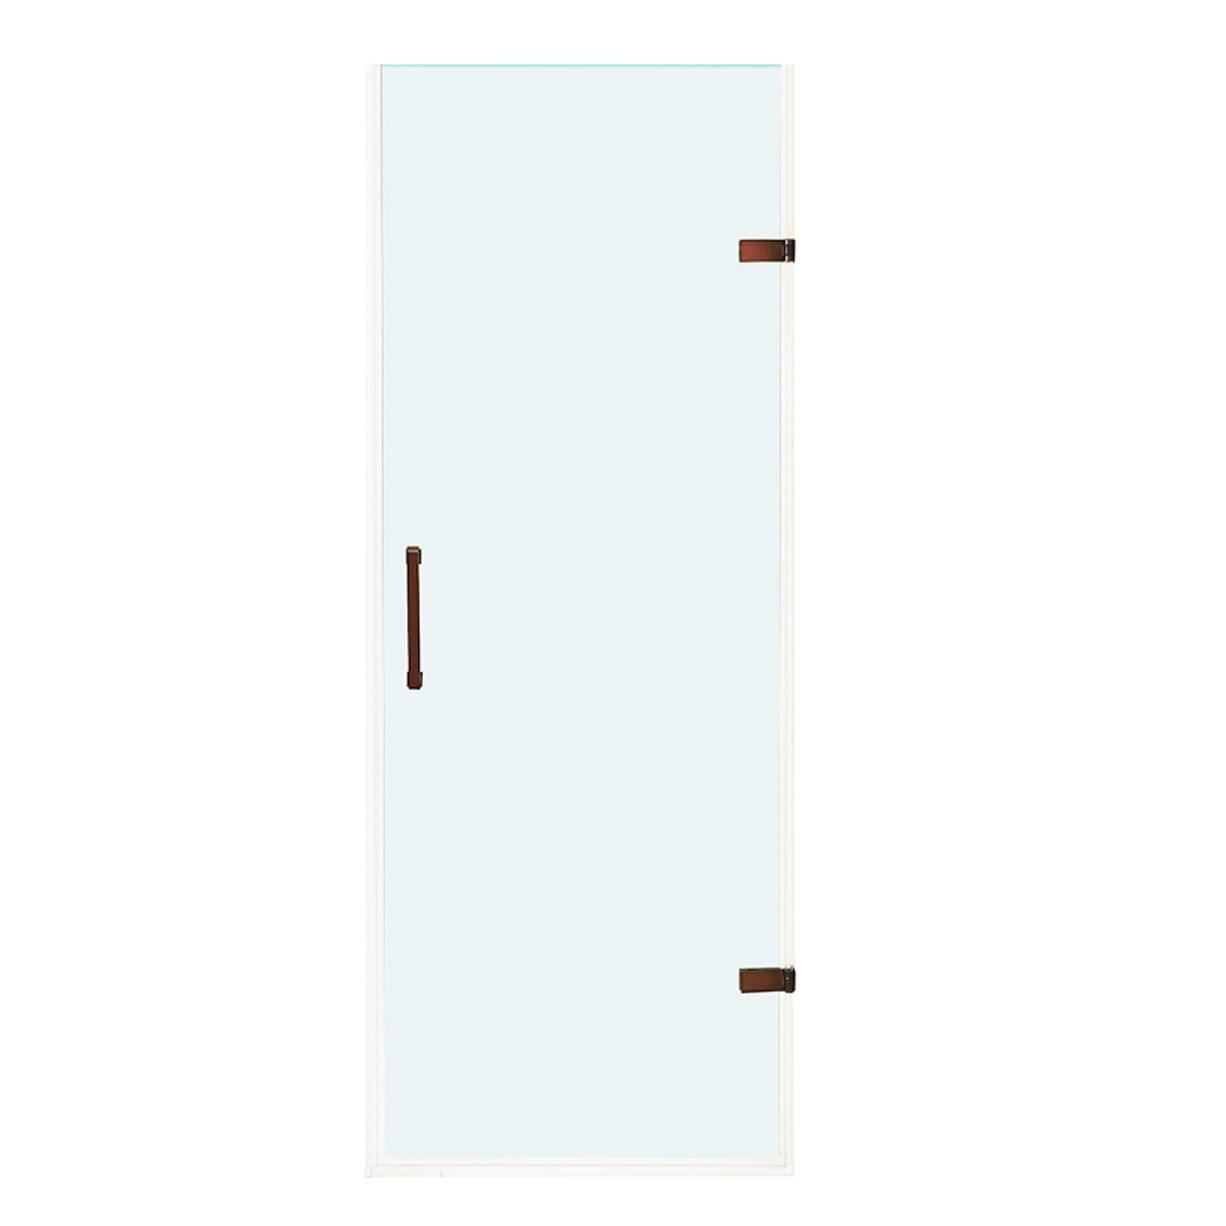 VIGO VG6072RBCL24 SoHo Adjustable Frameless Shower Door With Clear Glass In Oil Rubbed Bronze